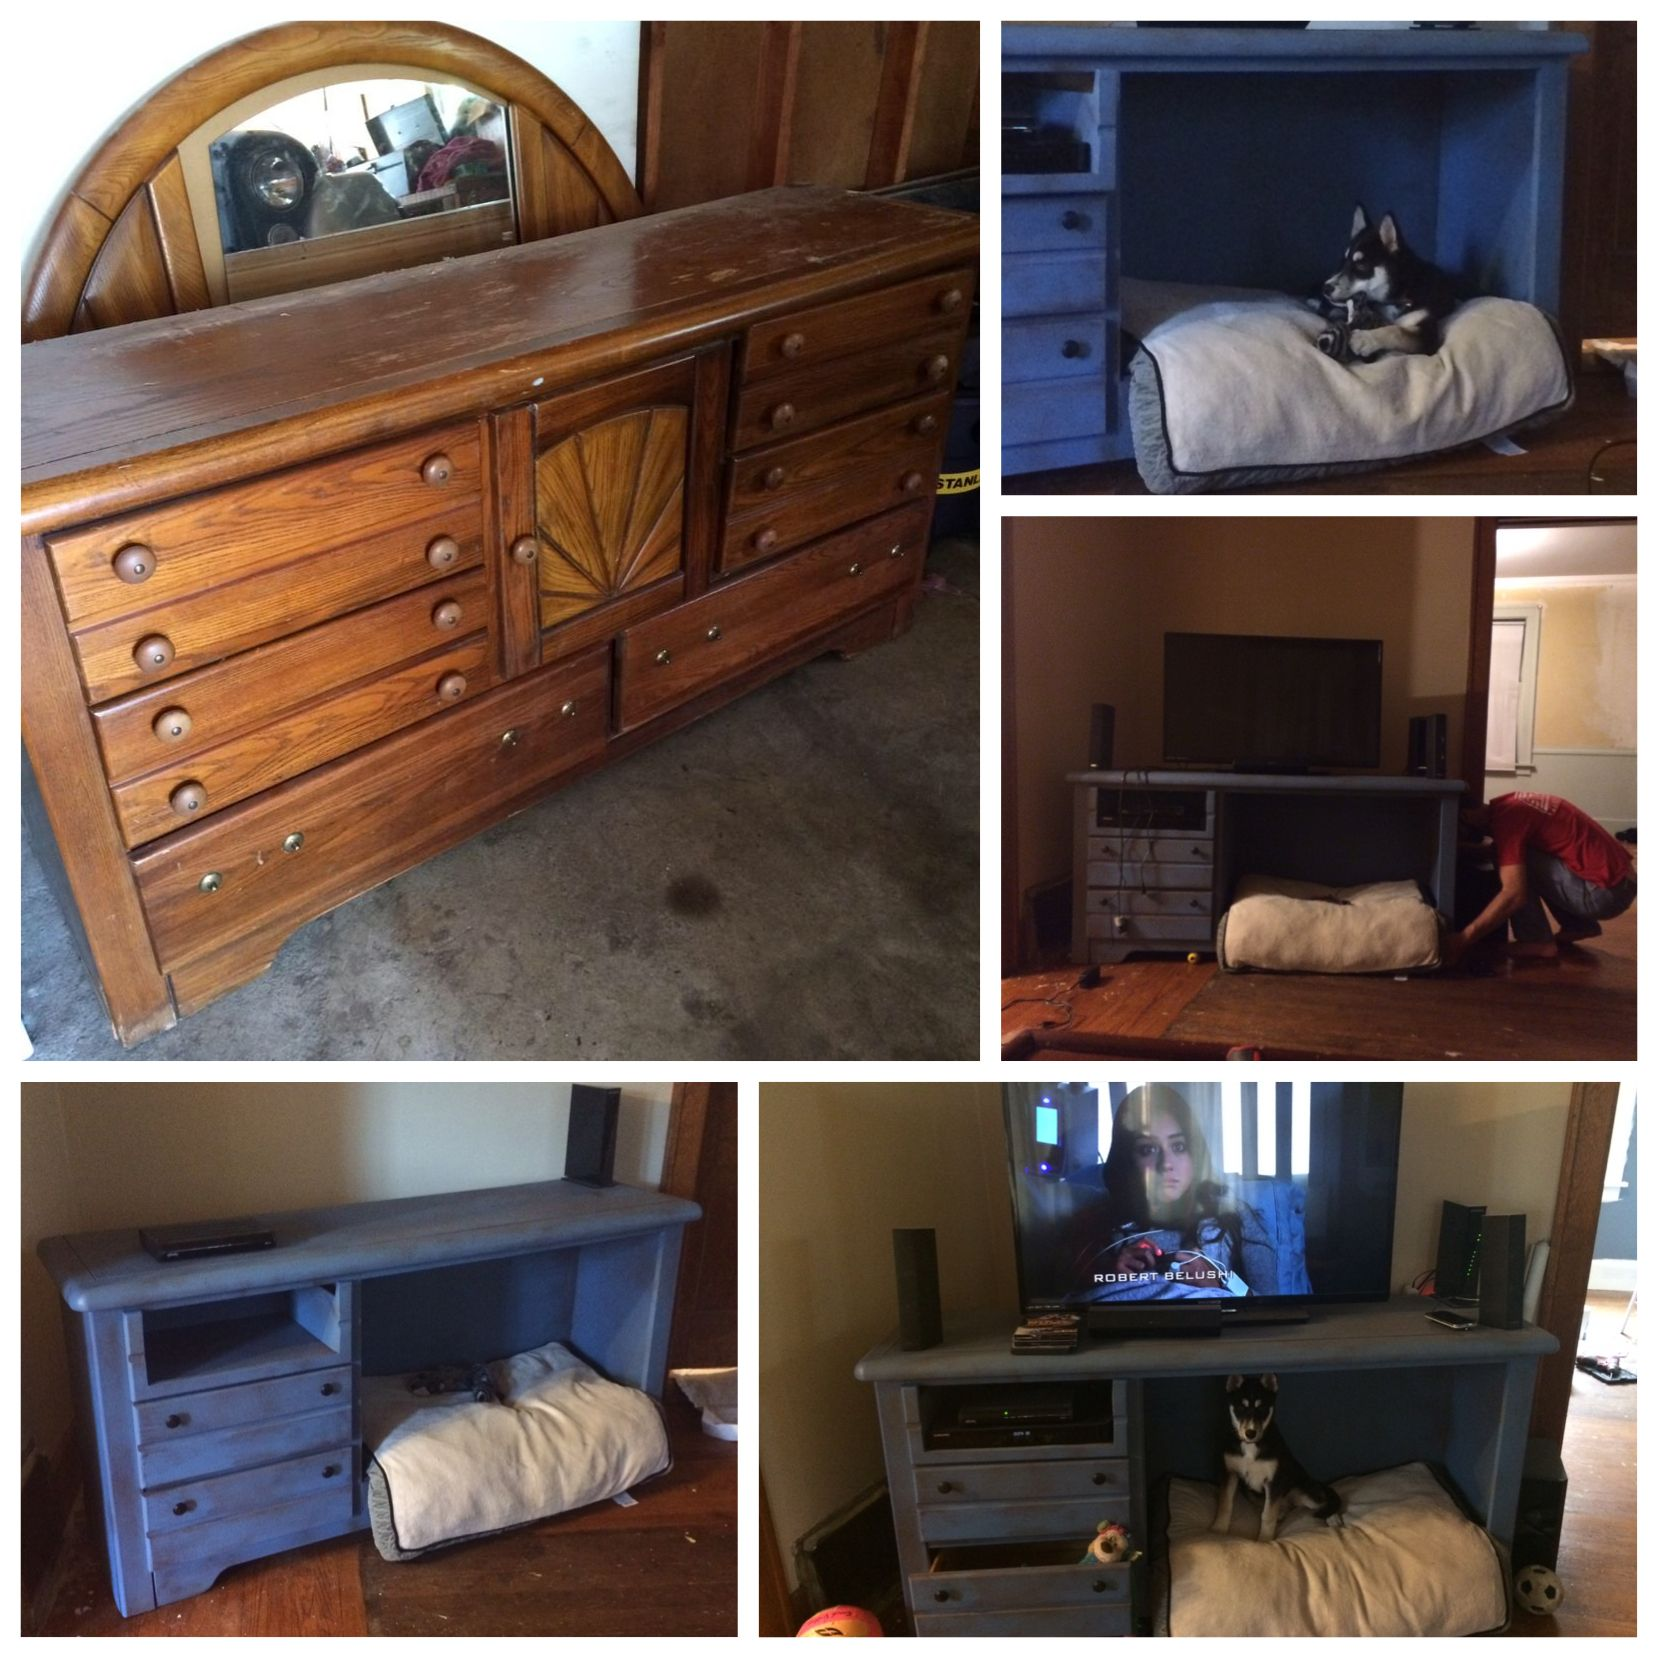 We turned this old dresser into a revamped TV stand dog bed for